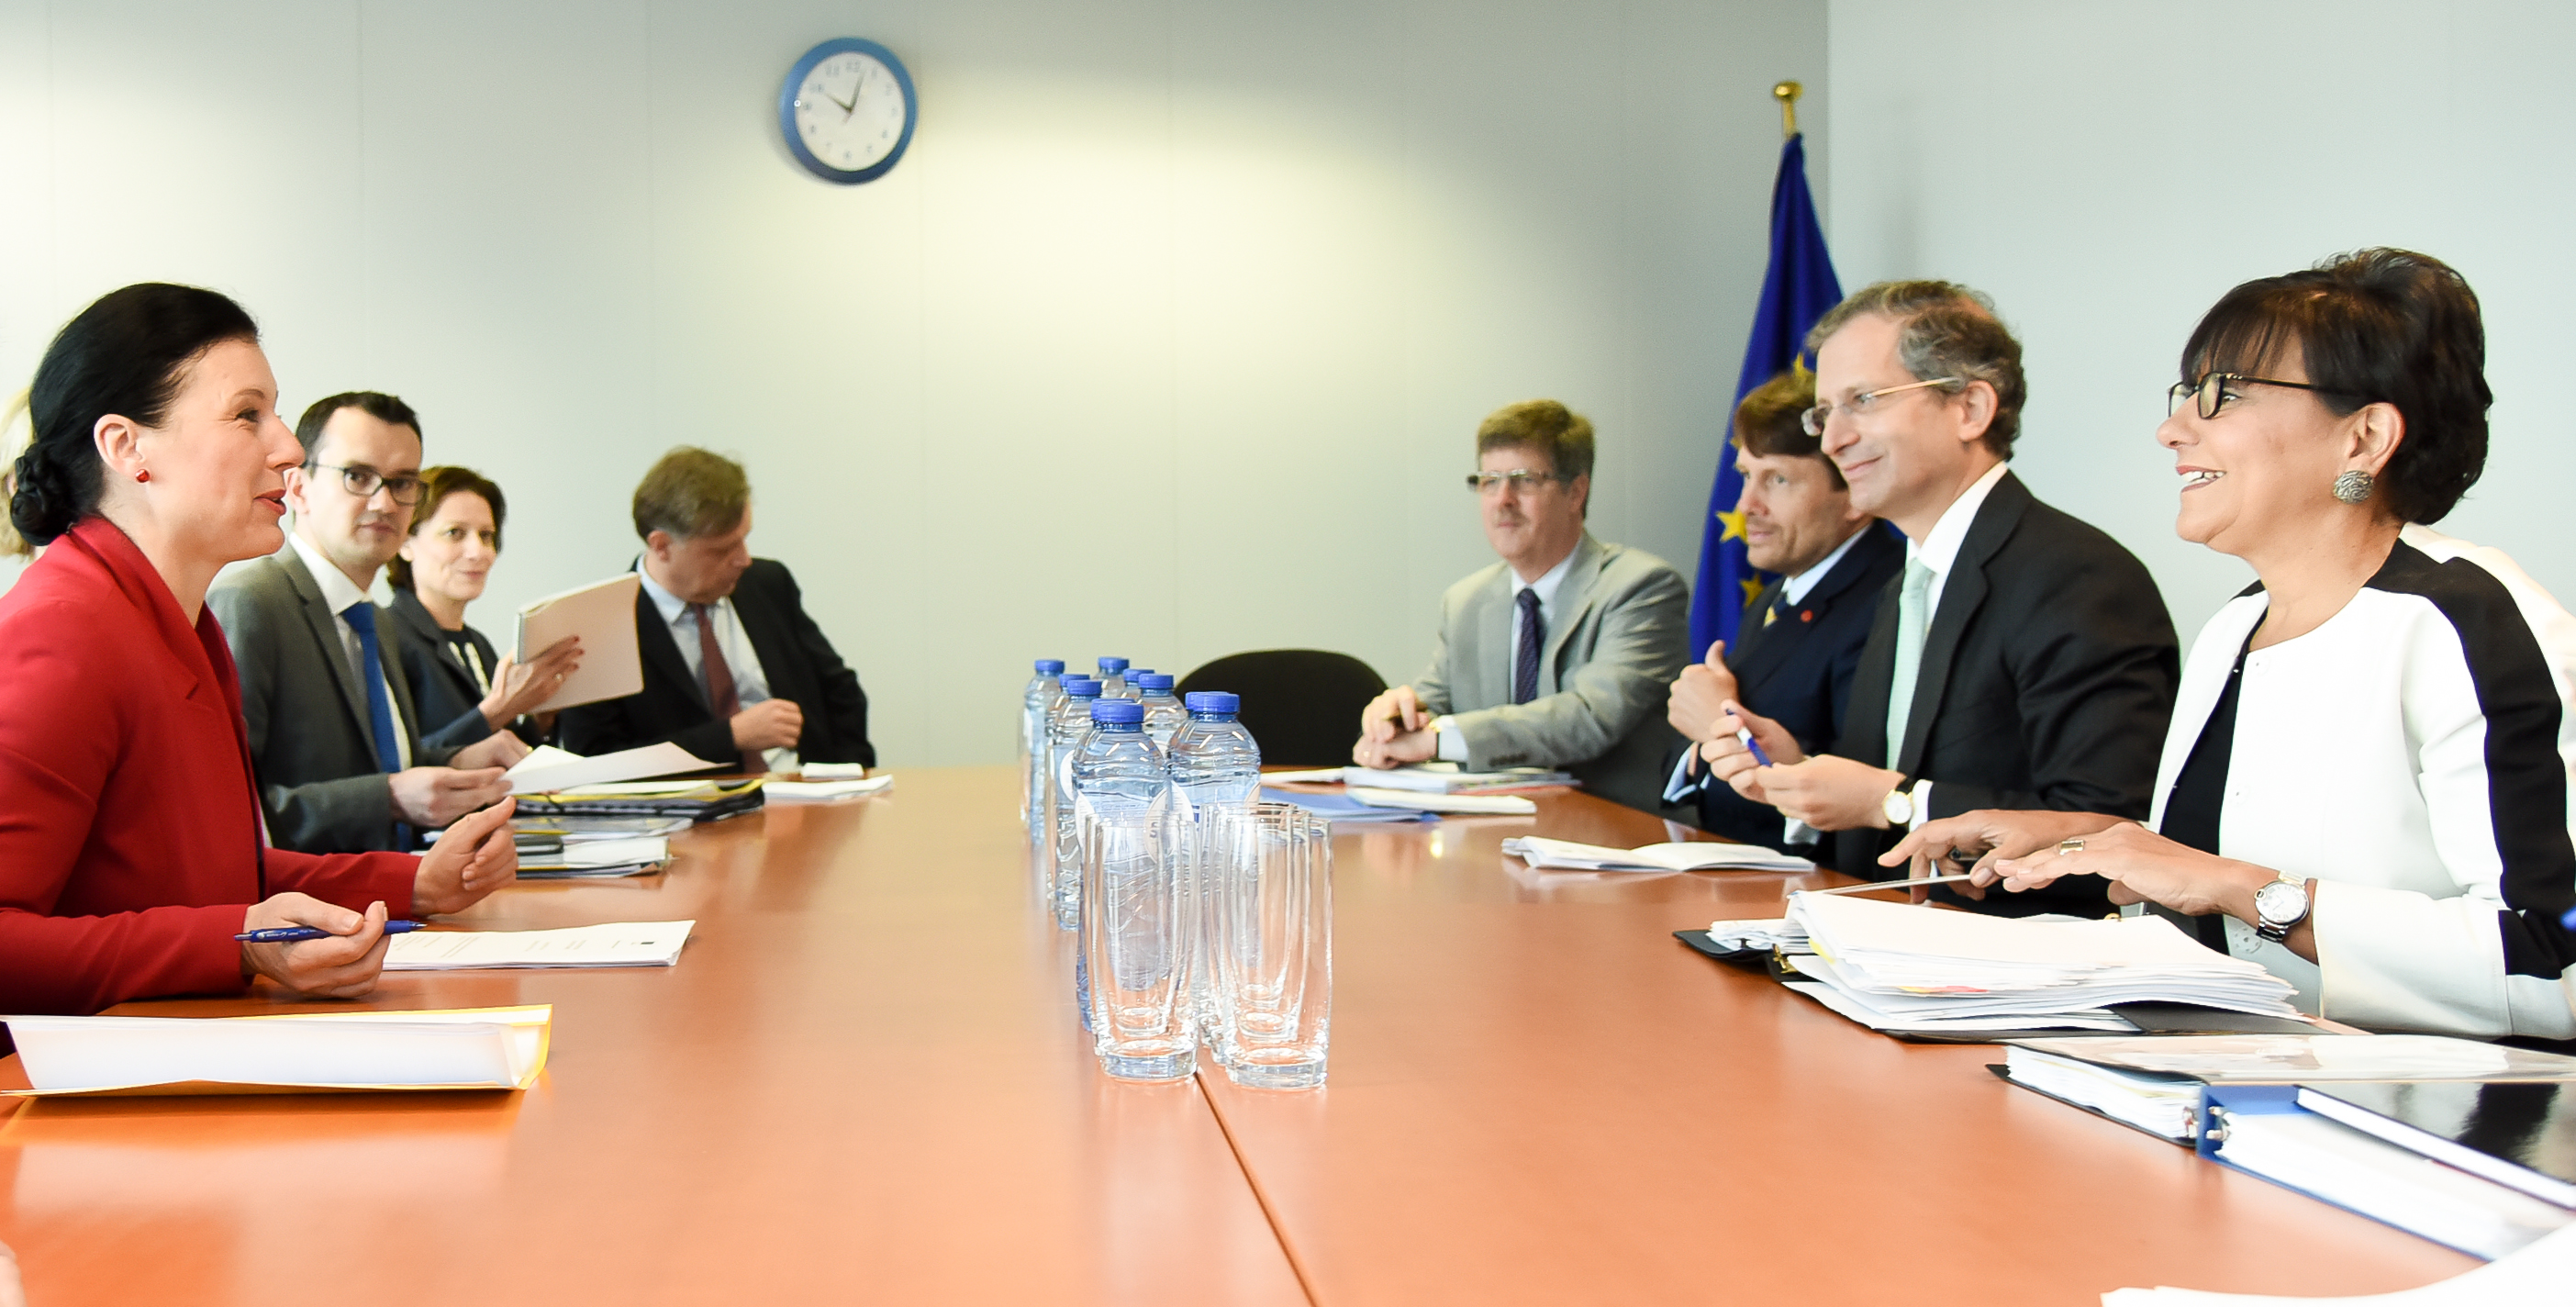 US Secretary of Commerce Penny Pritzker met with EU Justice Commissioner Vera Jourová this July in Brussels